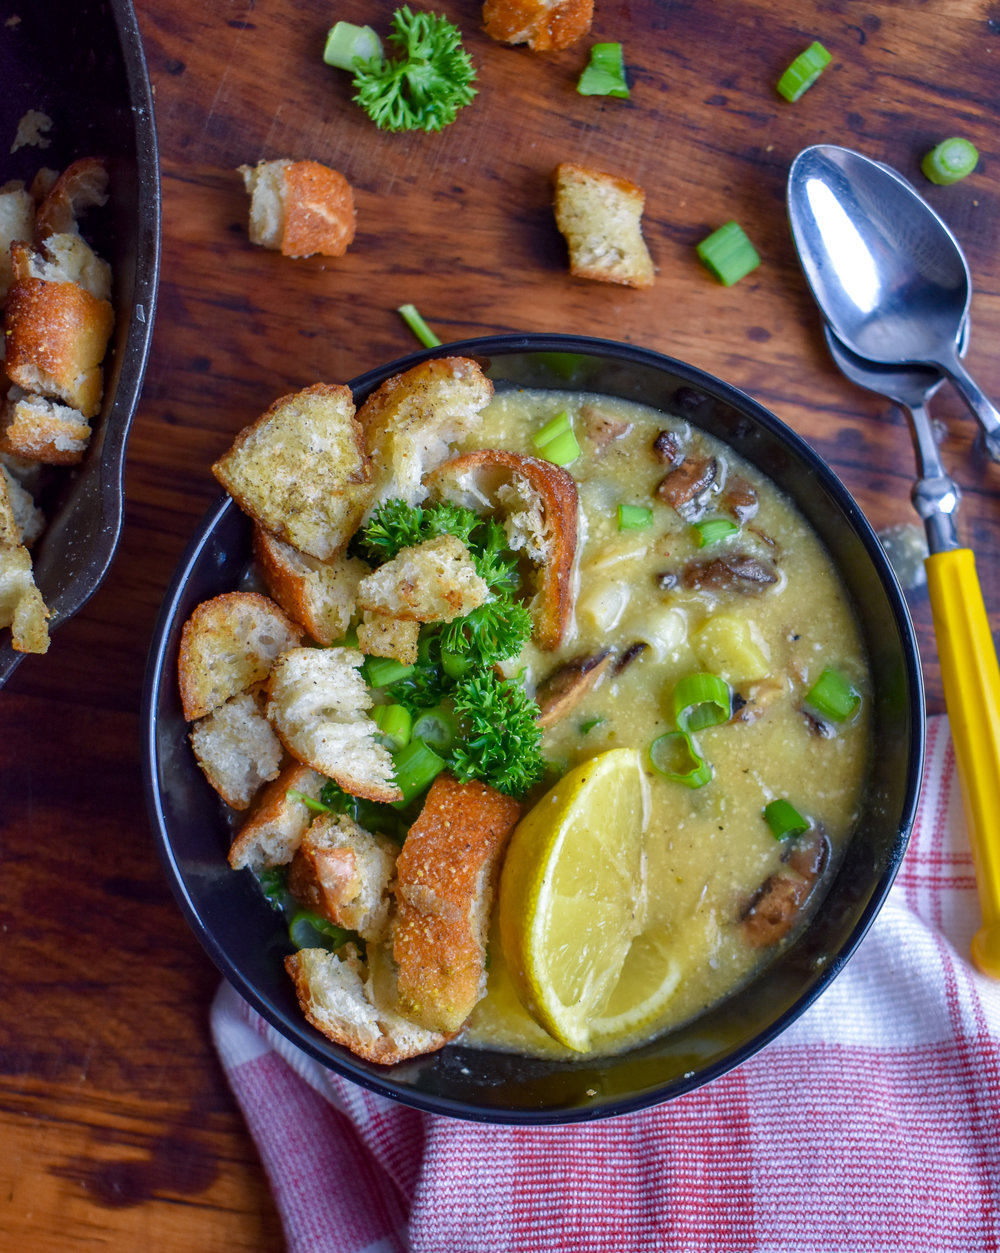 8. Finish by serving into 4 bowls with scallions and croutons. Squeeze lemon into the soup and mix well. Enjoy!